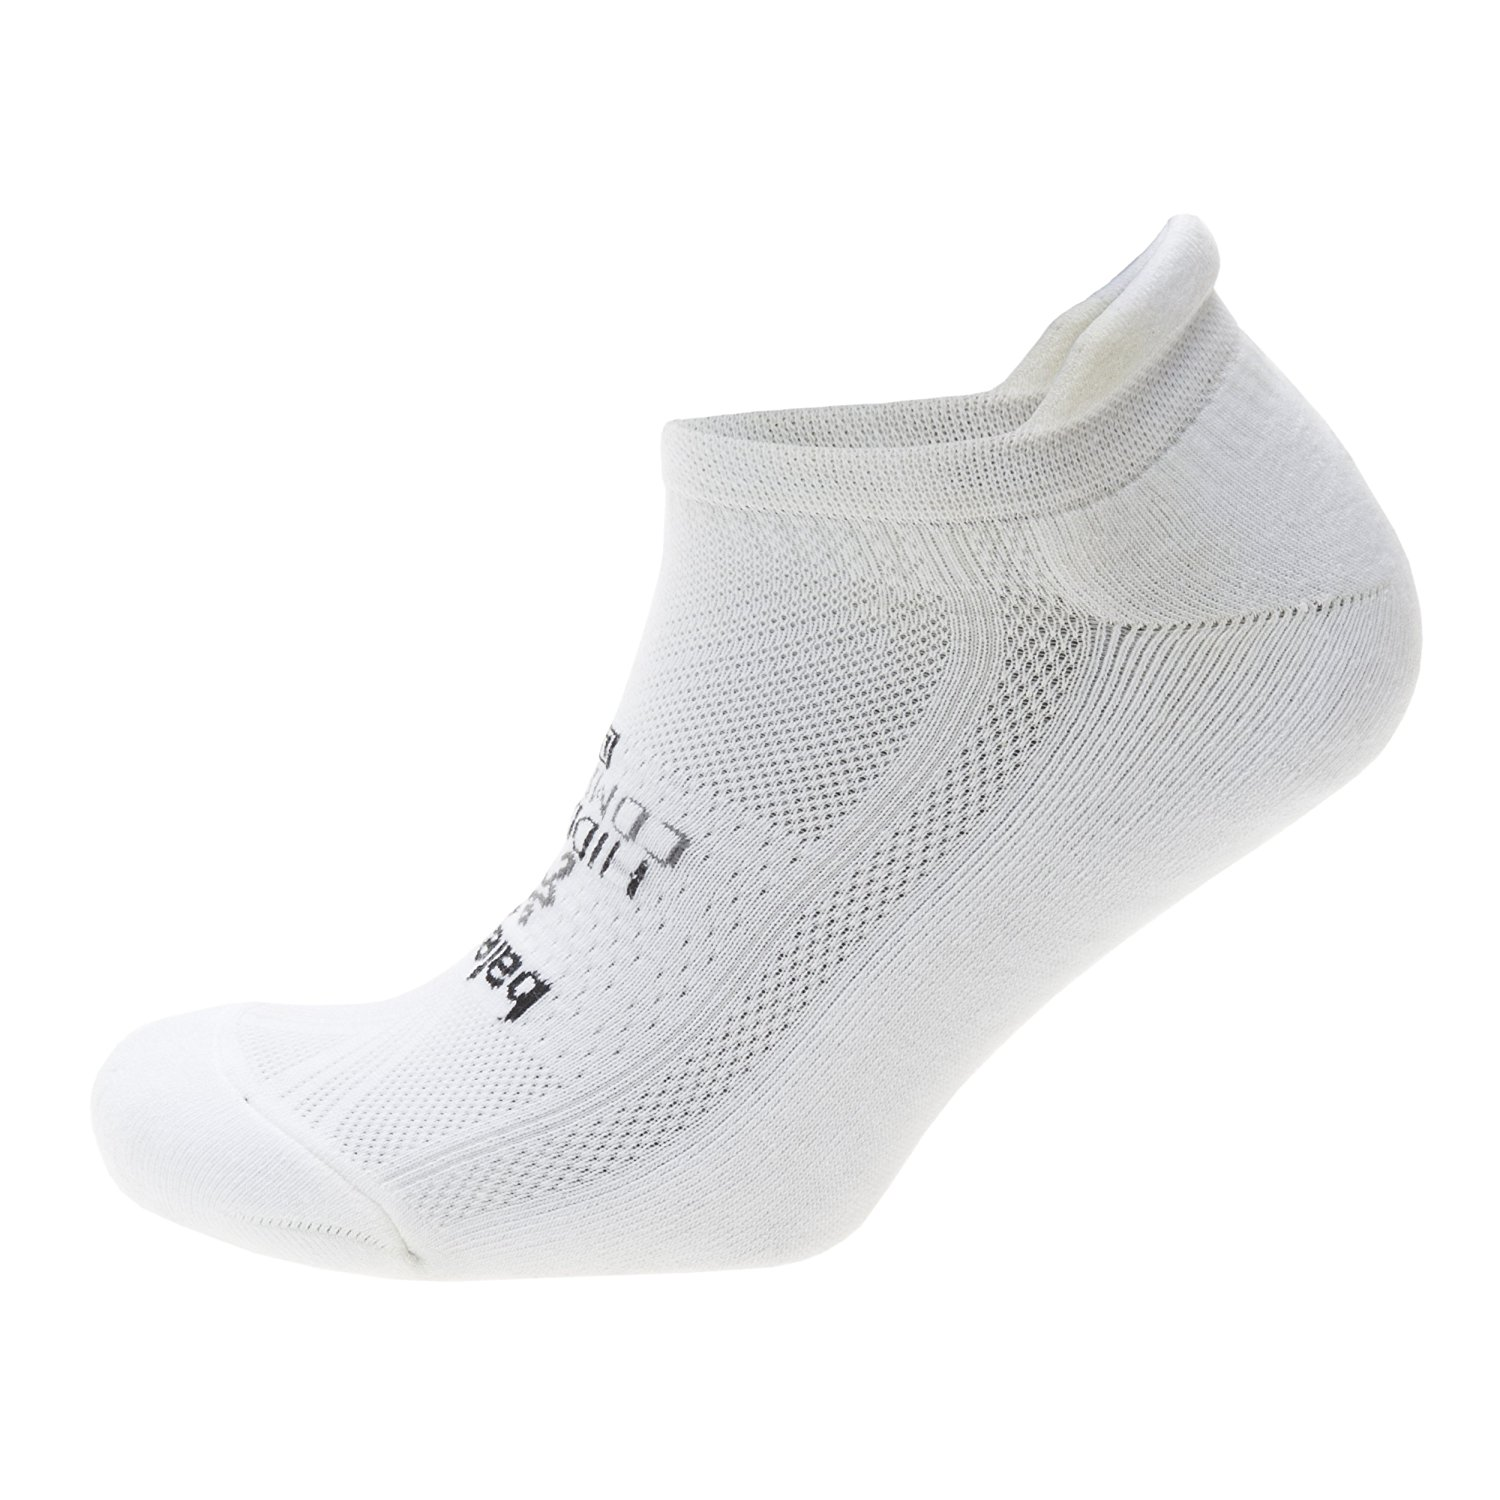 7. Balega Hidden Comfort Running Socks